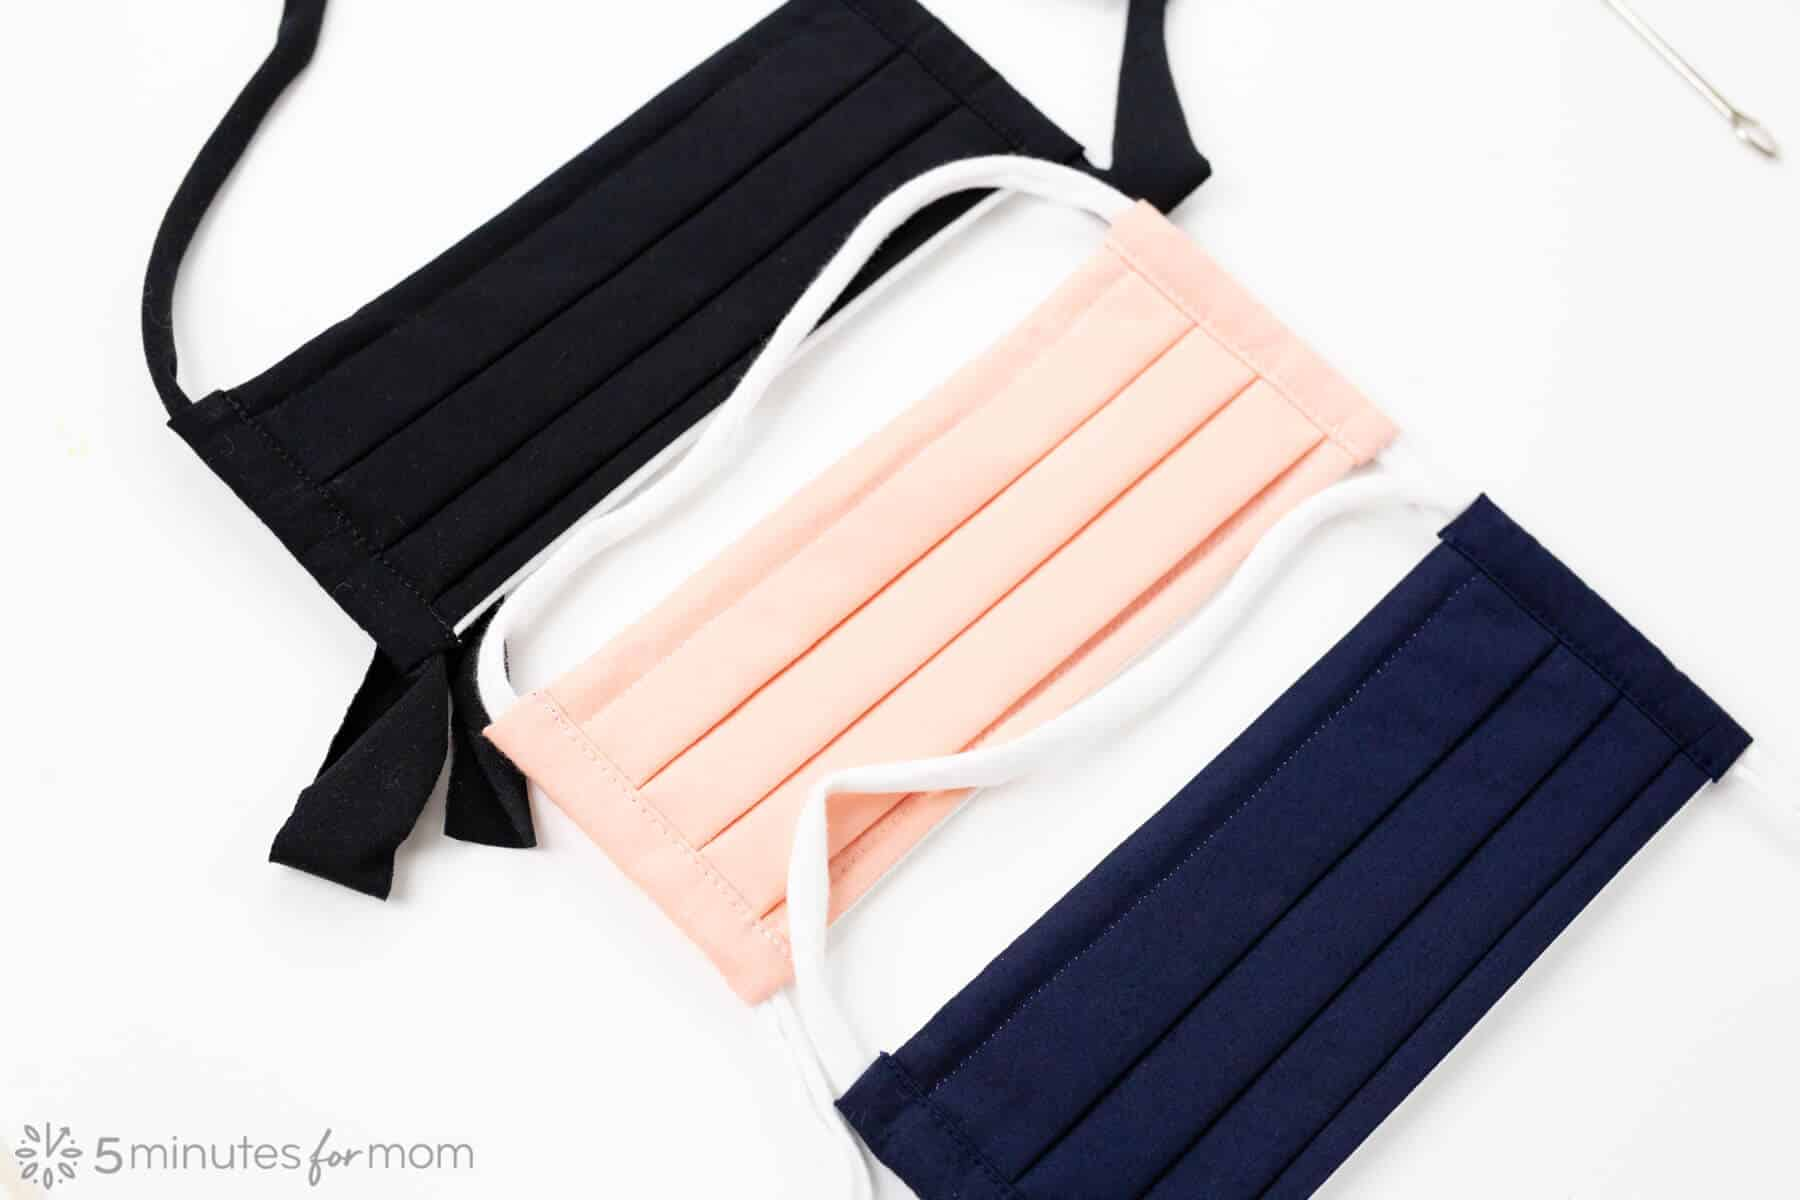 Easiest Face Mask Straps - Cloth face masks with fabric straps